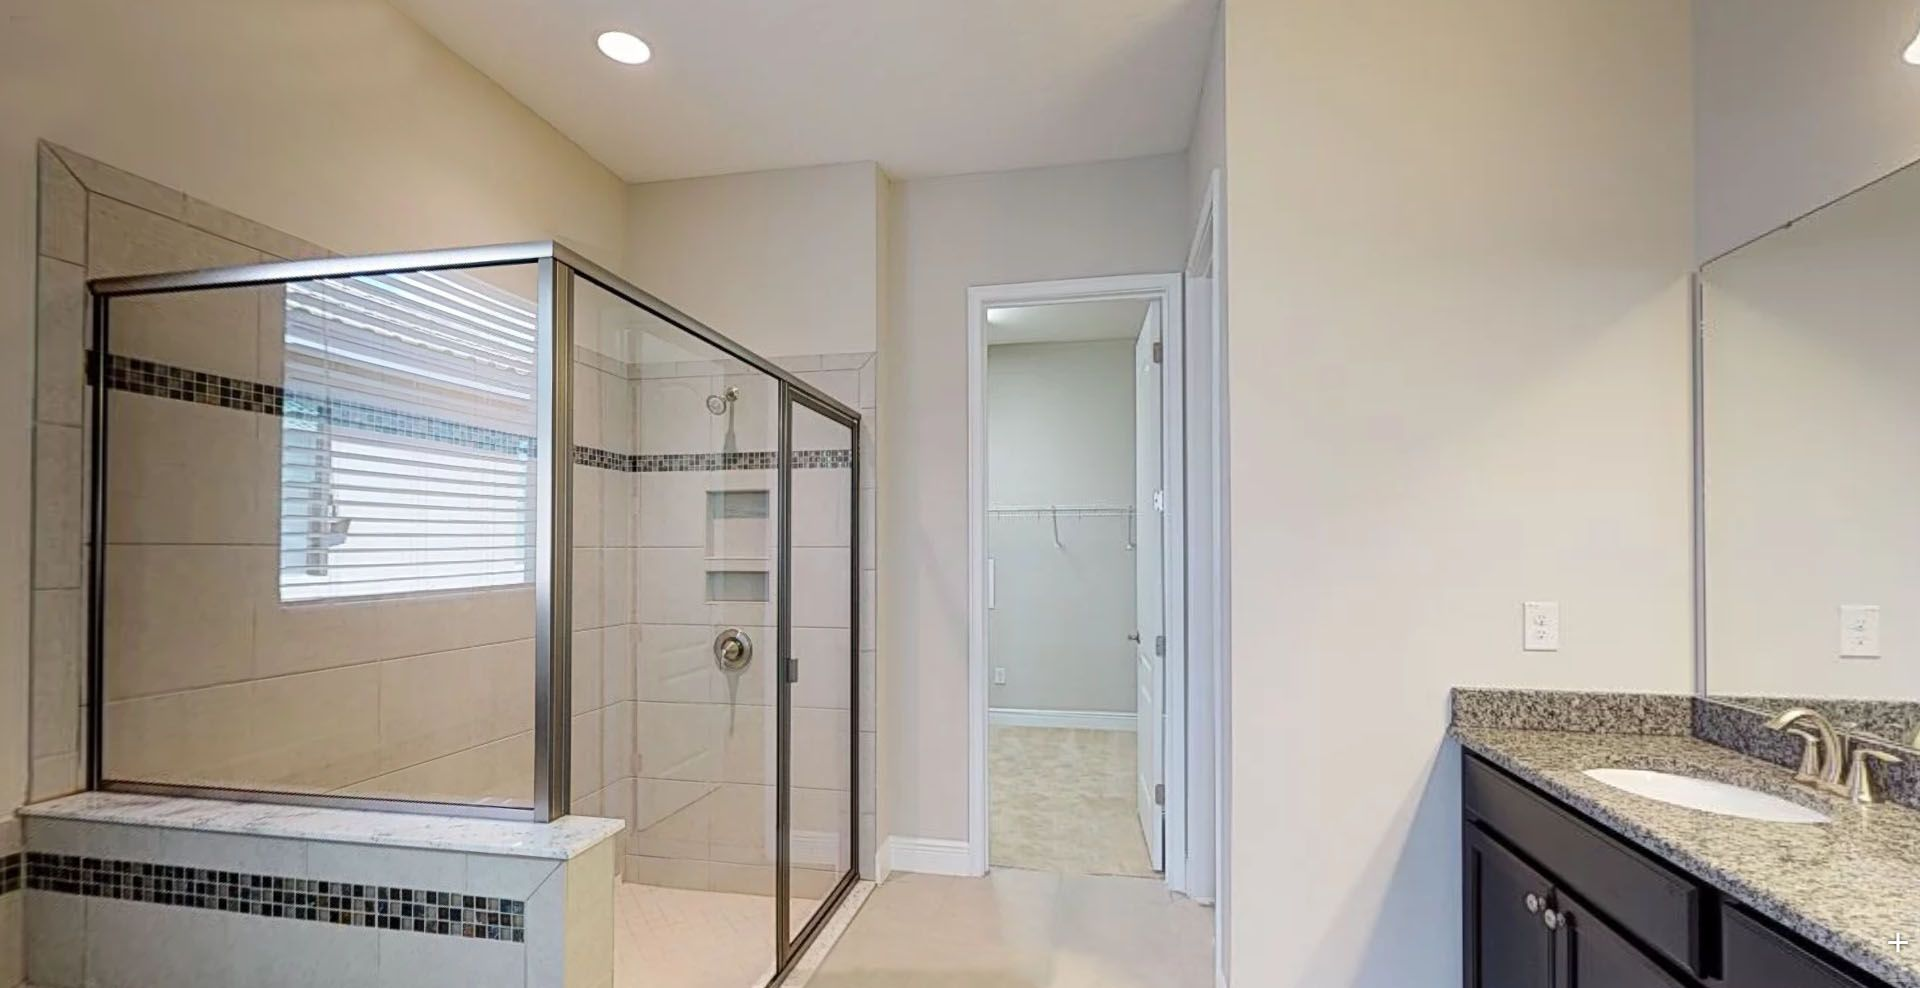 Bathroom featured in the Carlingford By William Ryan Homes in Tampa-St. Petersburg, FL